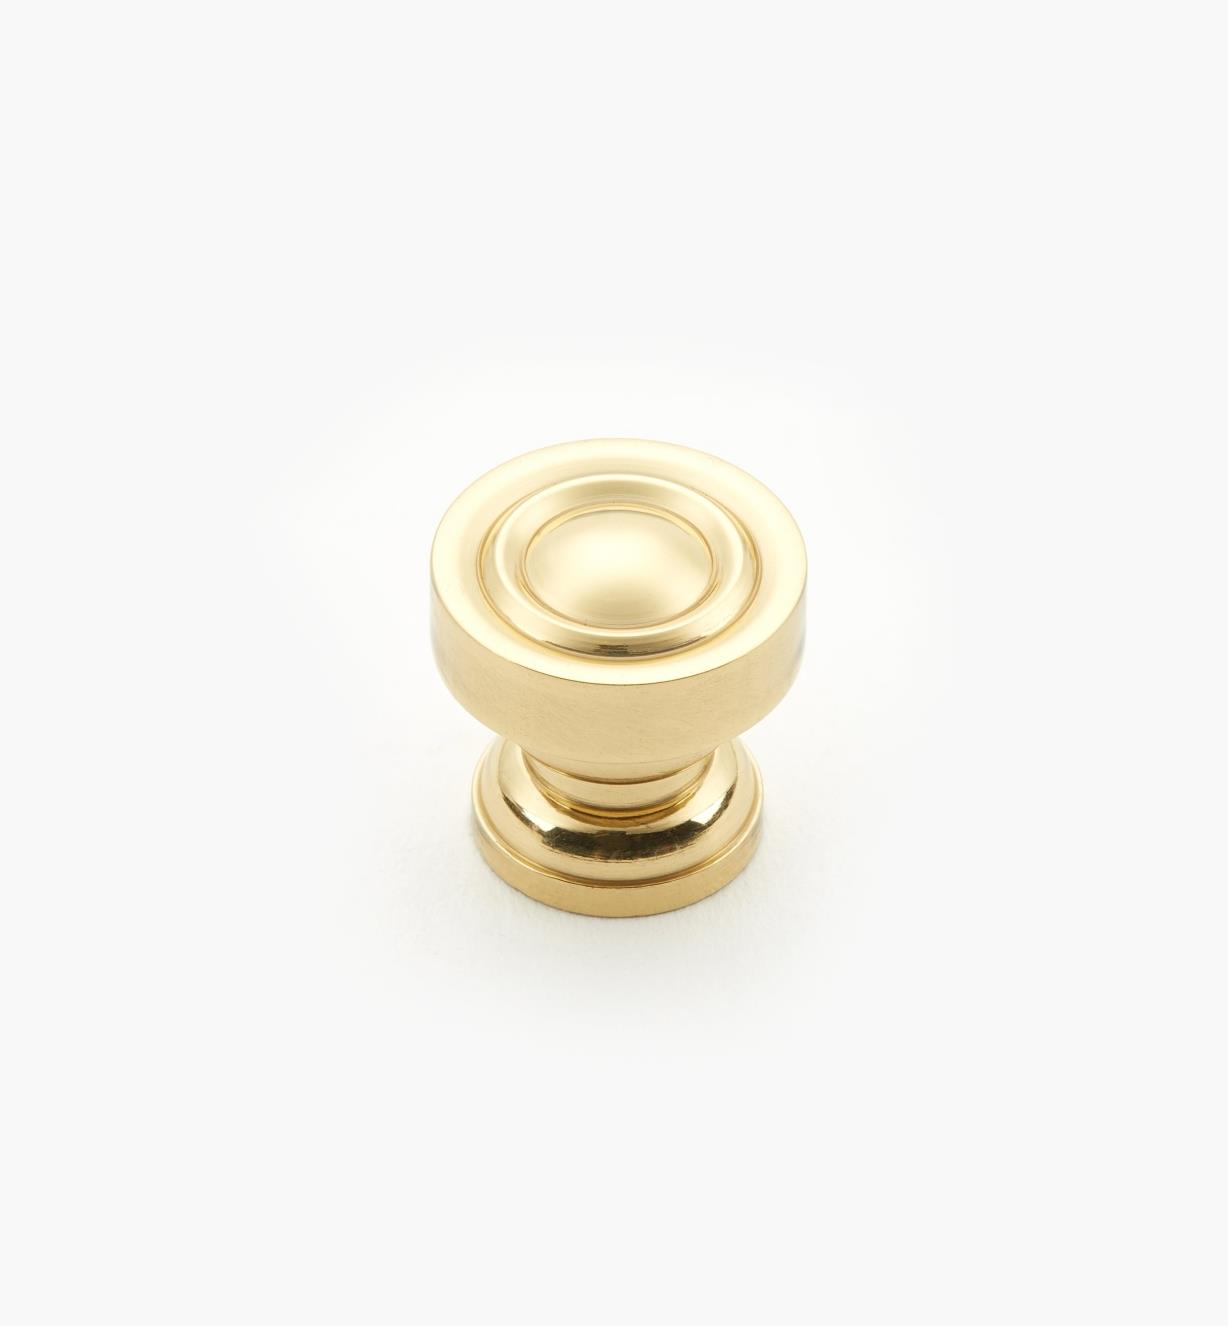 "01W1311 - 9/16"" x 9/16"" Polished Brass Knob"